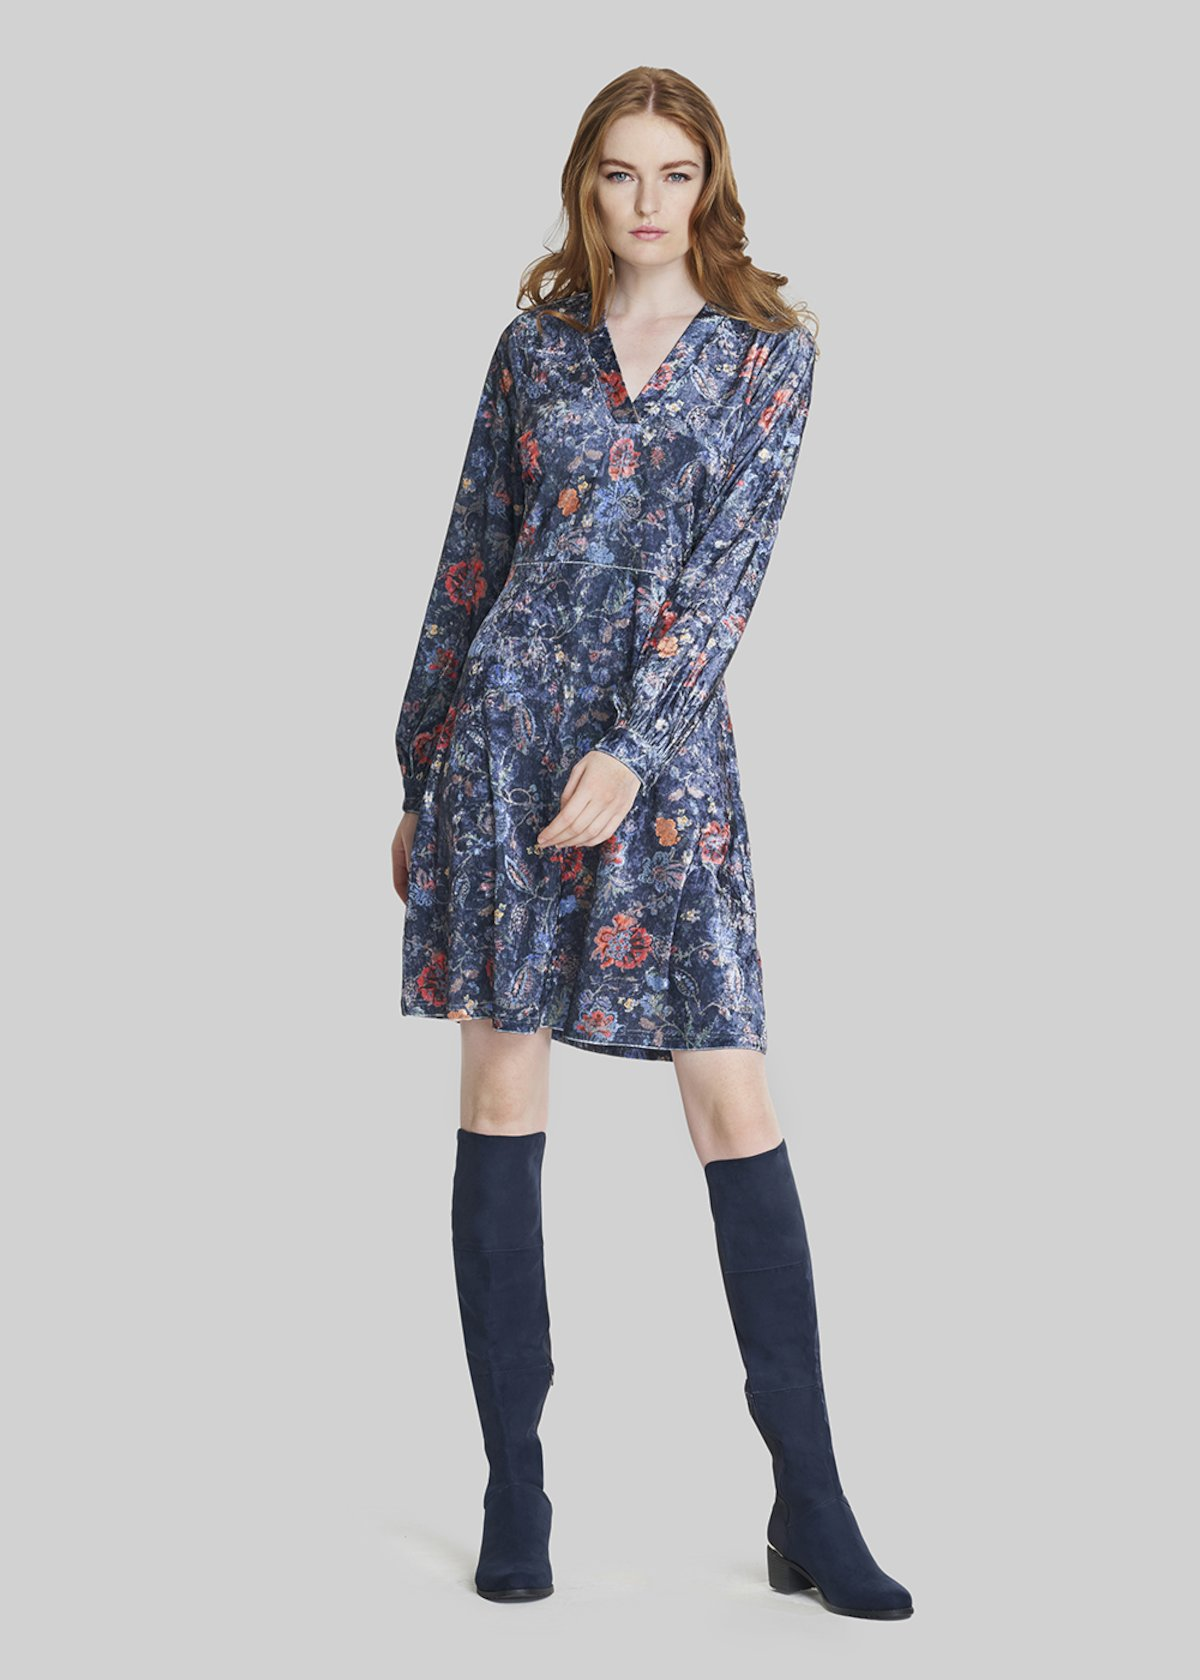 Arley Floral velvet dress - Medium Blue / Redbe / Fantasia